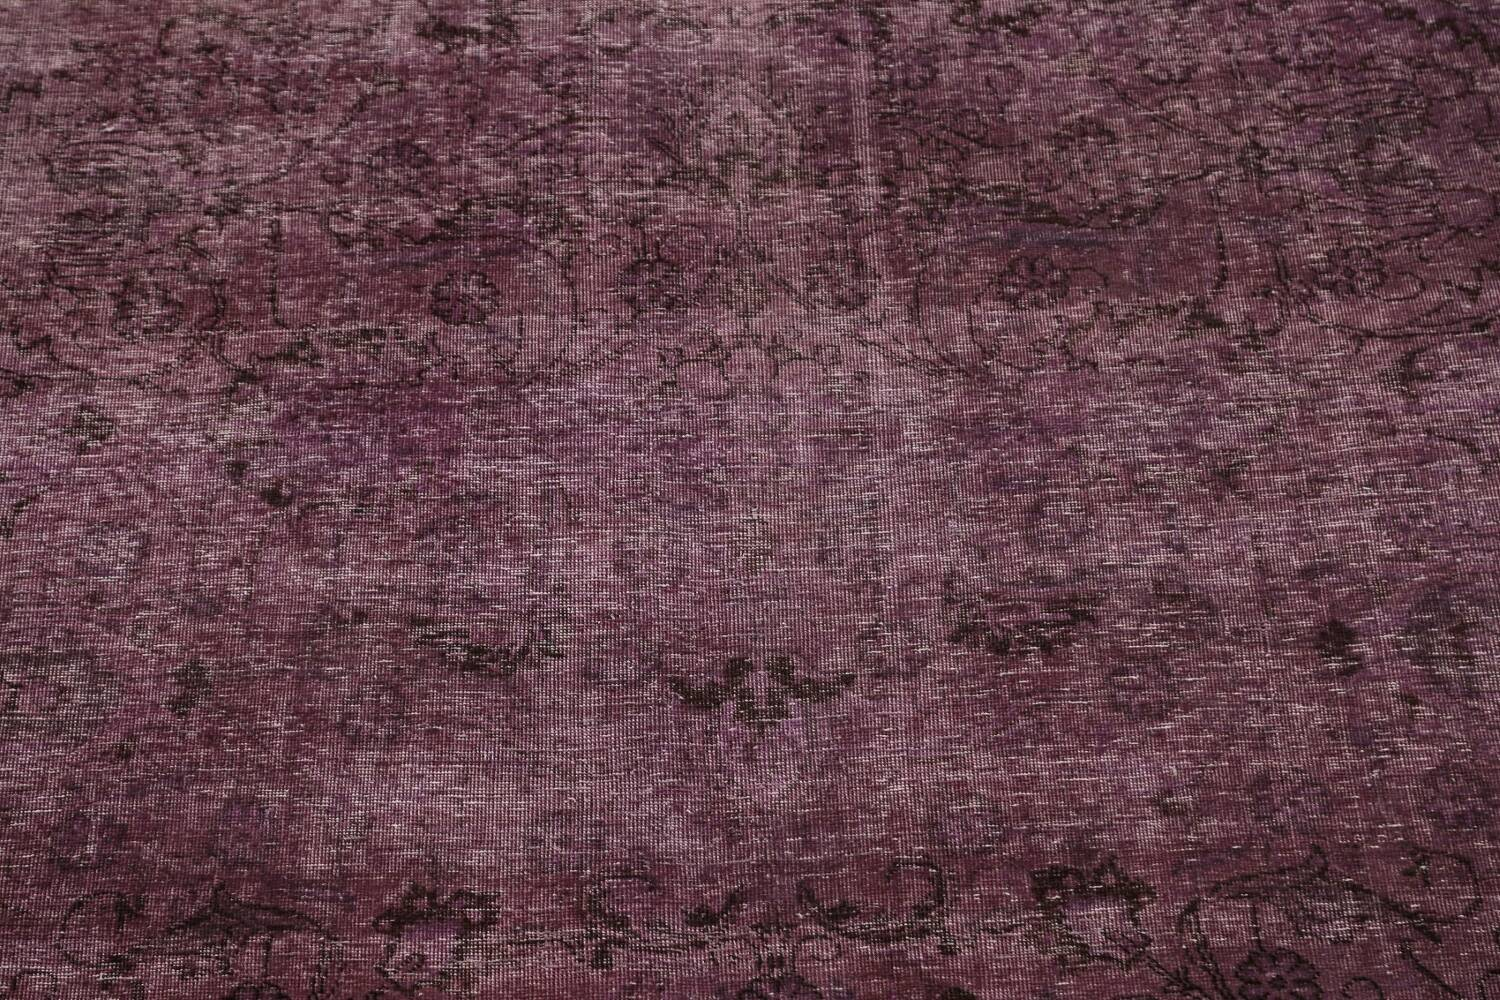 Distressed Over-dyed Tabriz Persian Area Rug 10x11 image 4